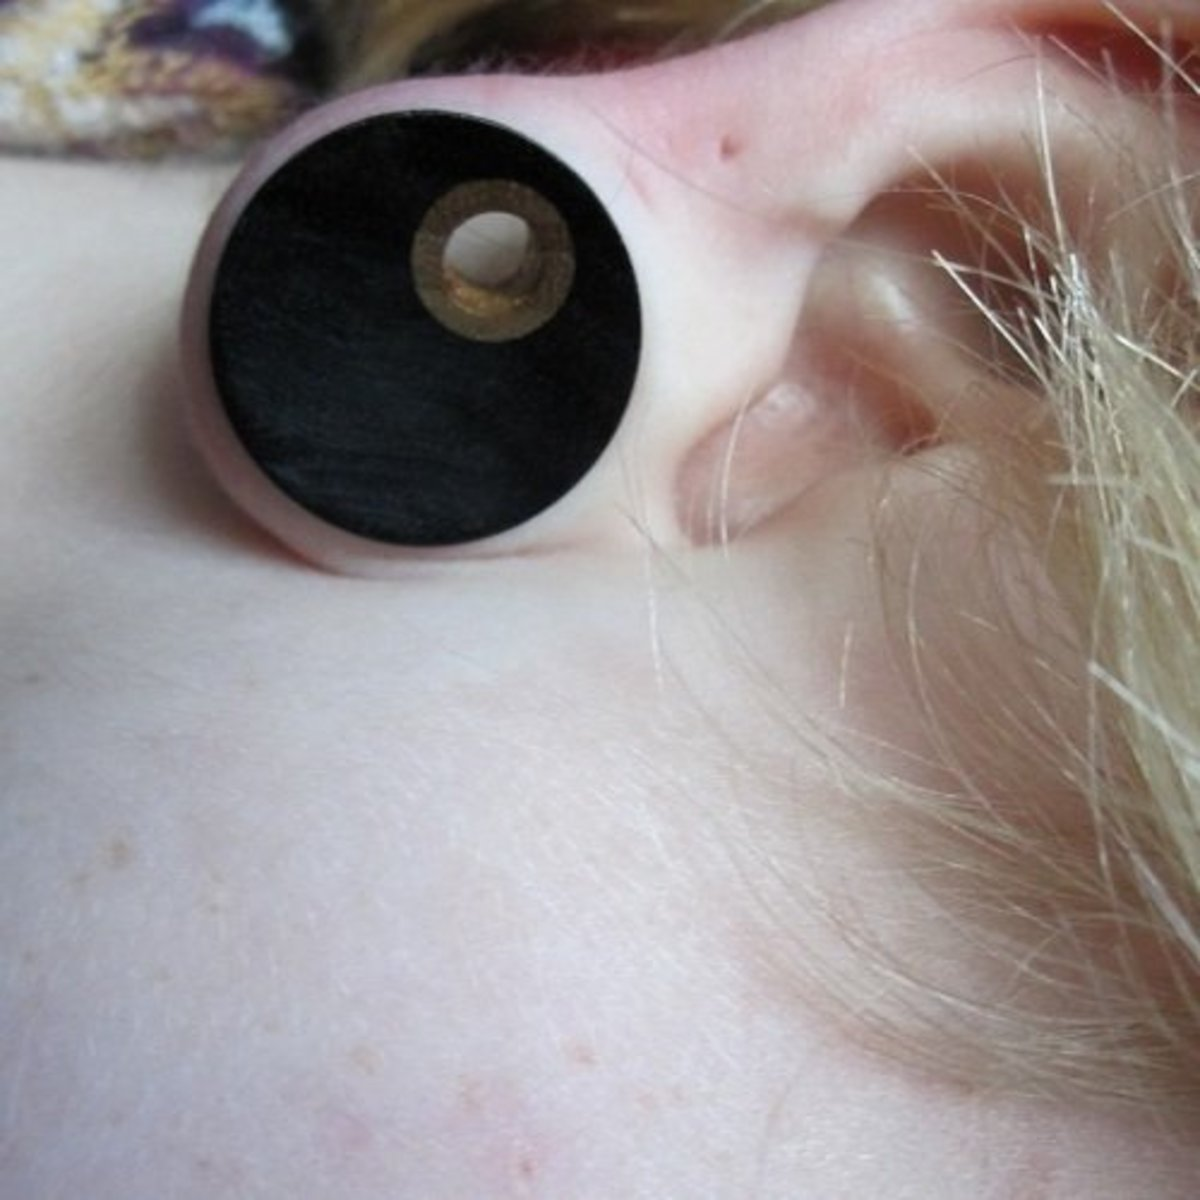 Some person wearing wood plugs. I don't know why the image is sideways.